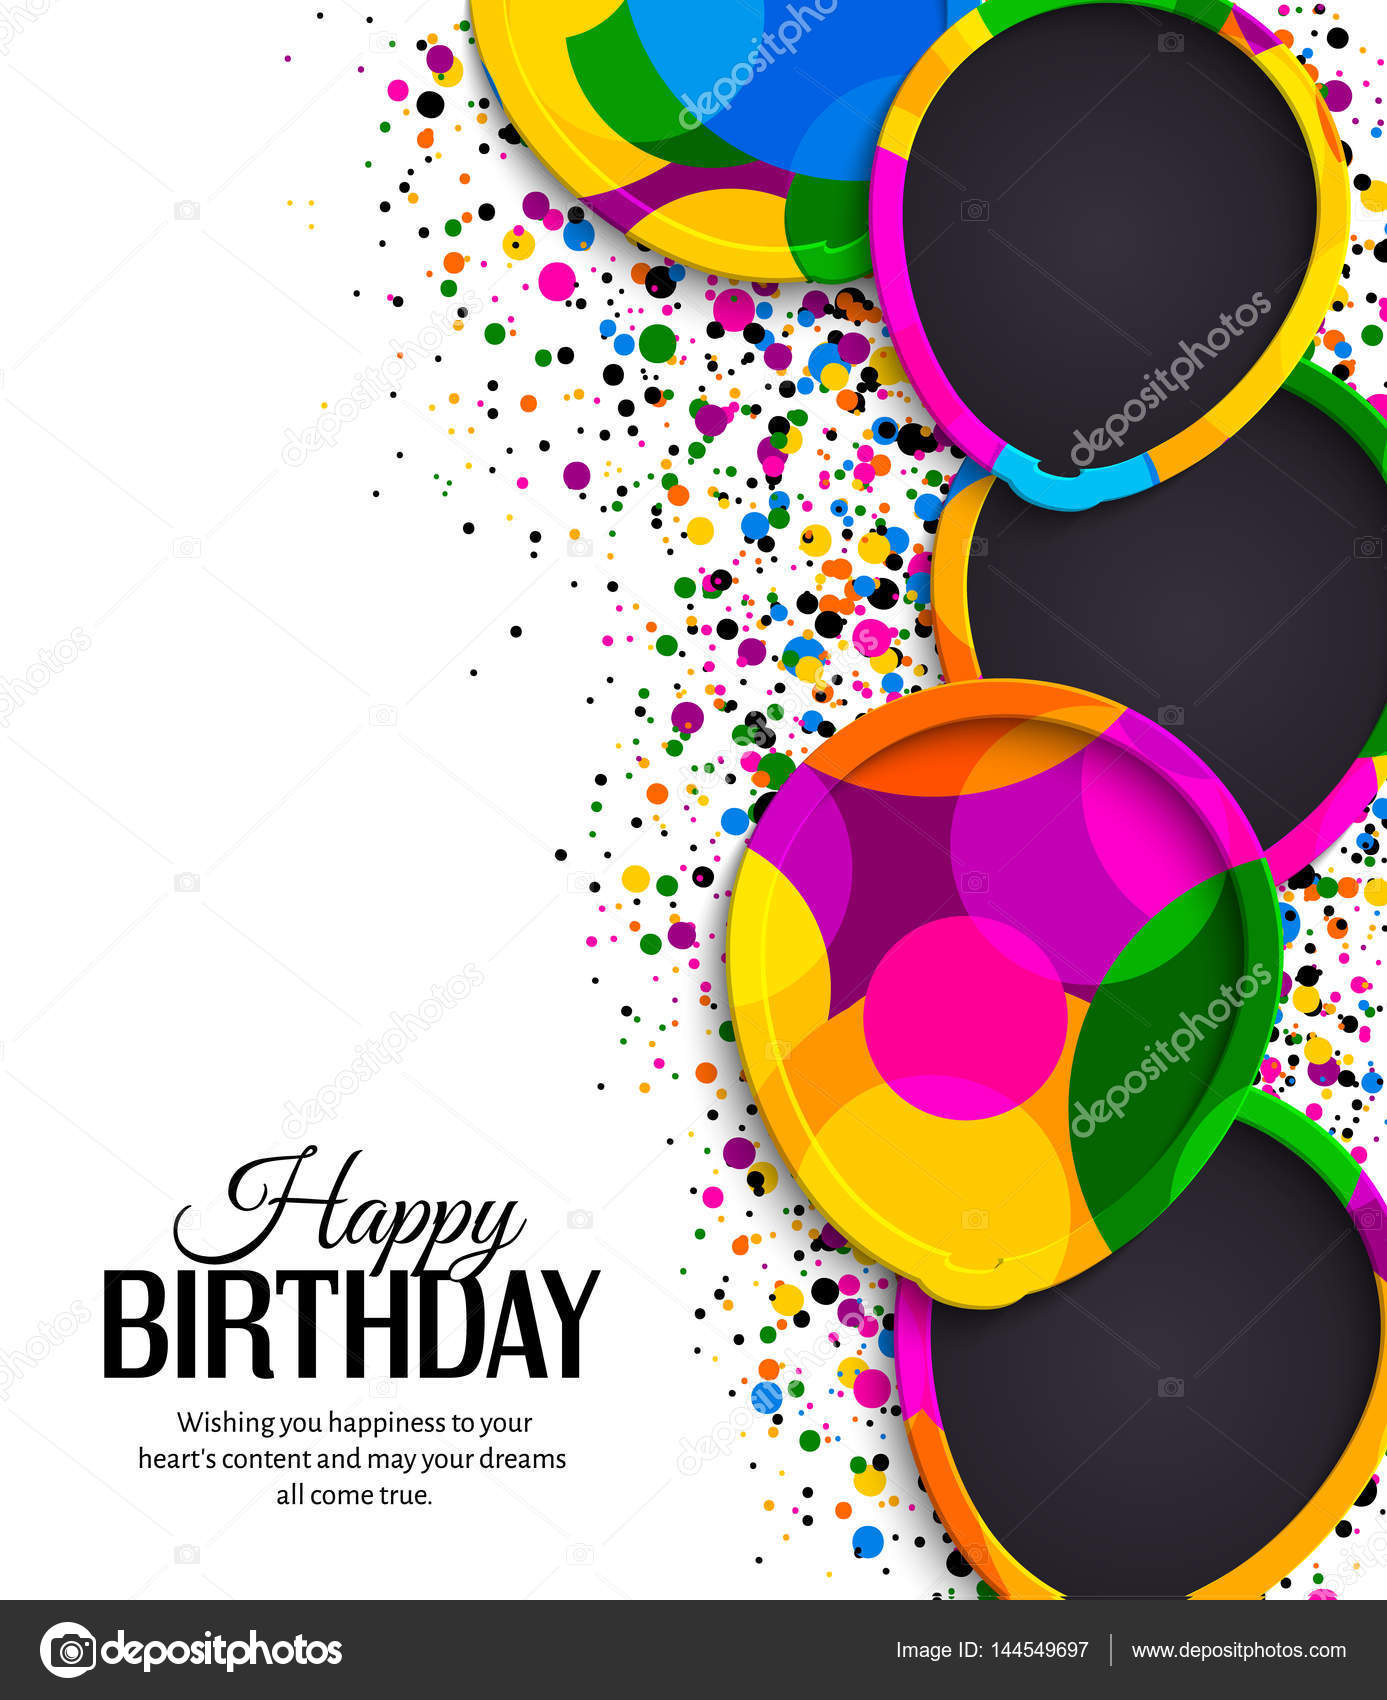 Happy birthday greeting card Paper balloons with colorful borders